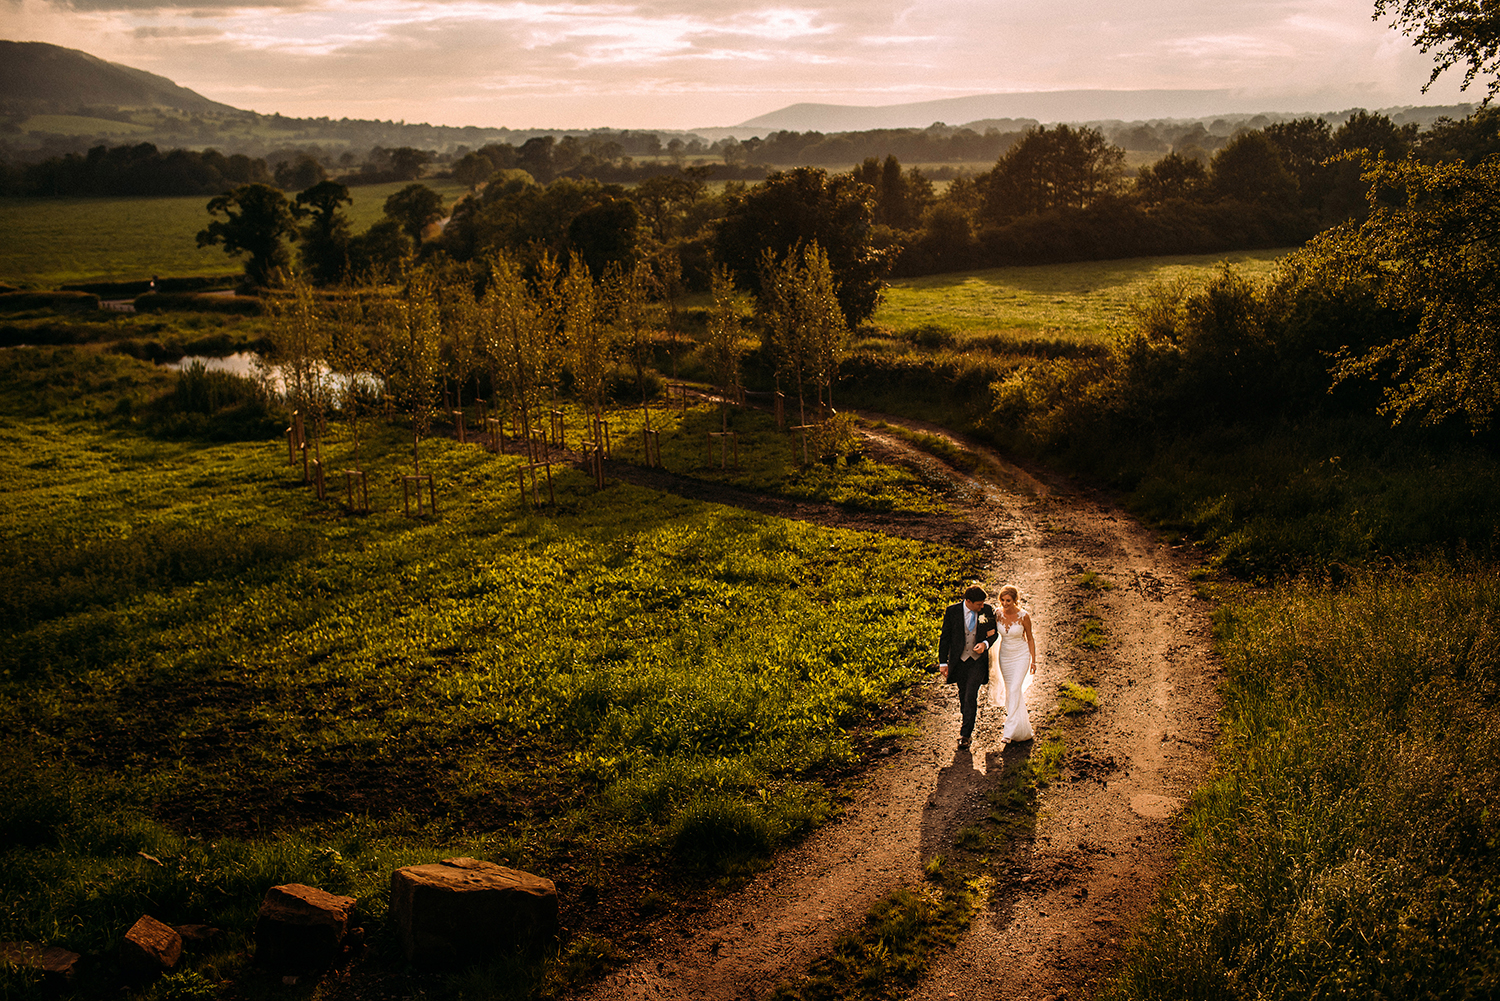 elevated wide shot of bride and groom walking through stunning scenery in the valley